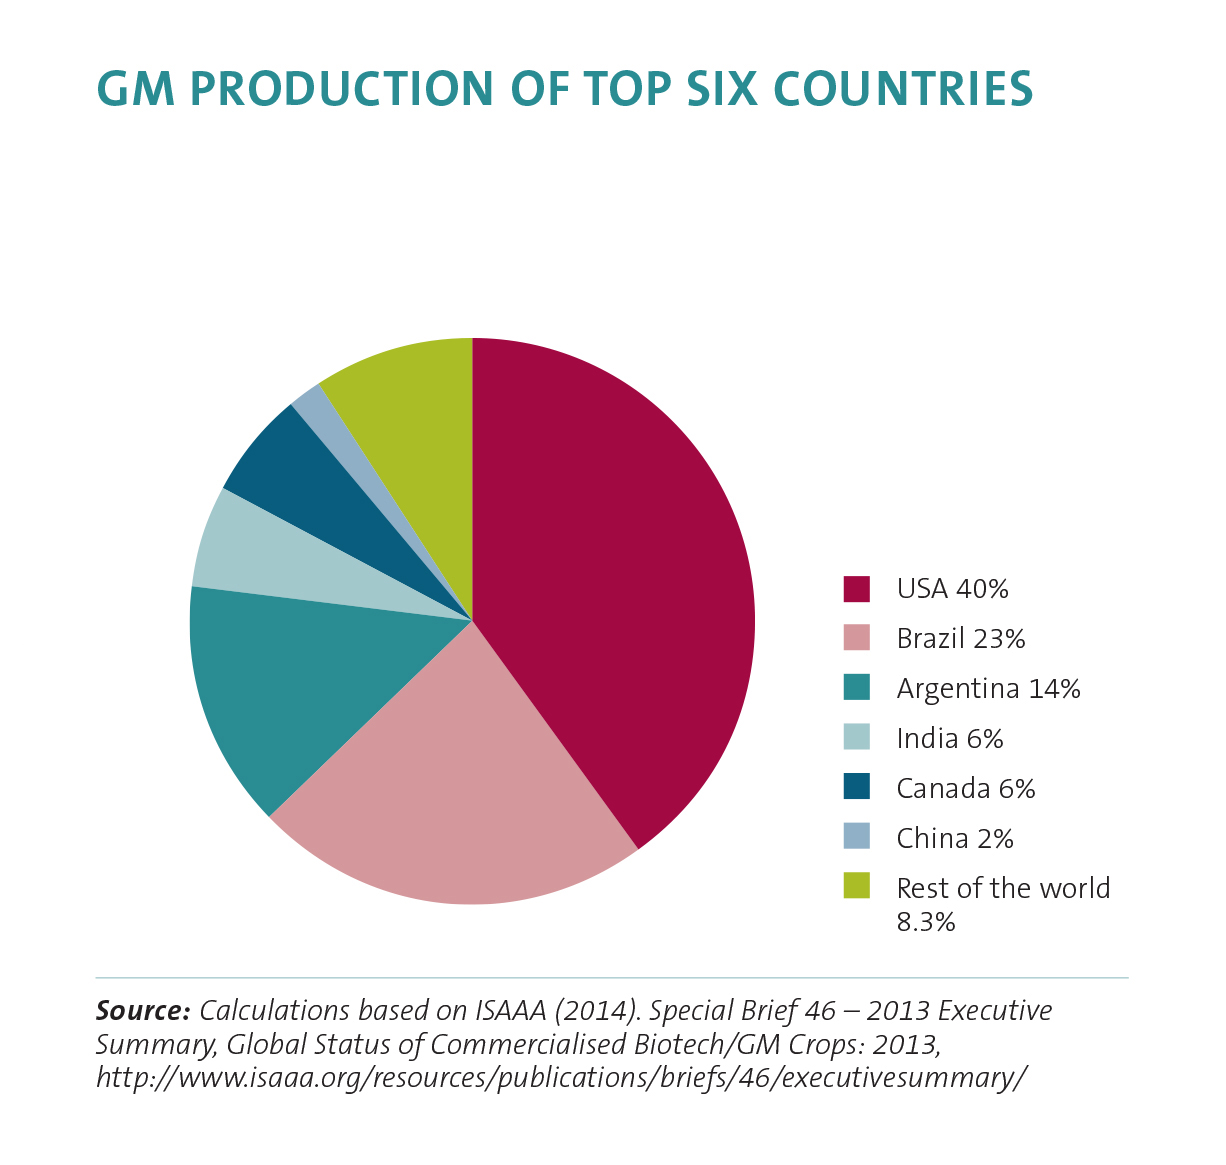 GM production of top six countries